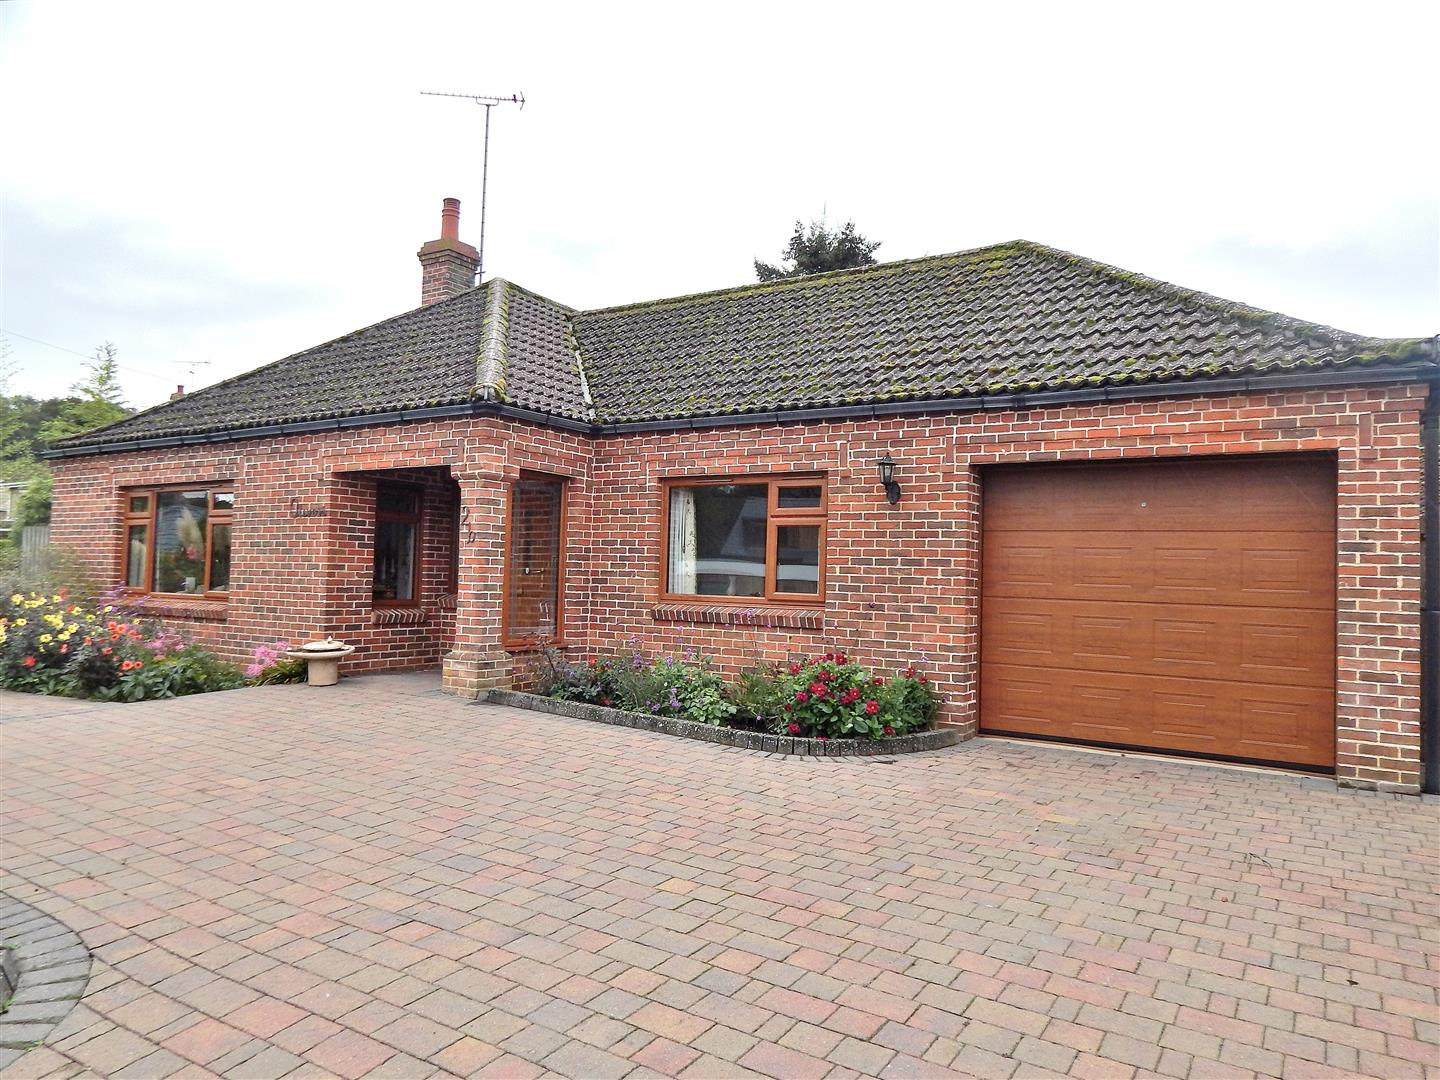 3 bed detached bungalow for sale in King's Lynn, PE31 6QD, PE31